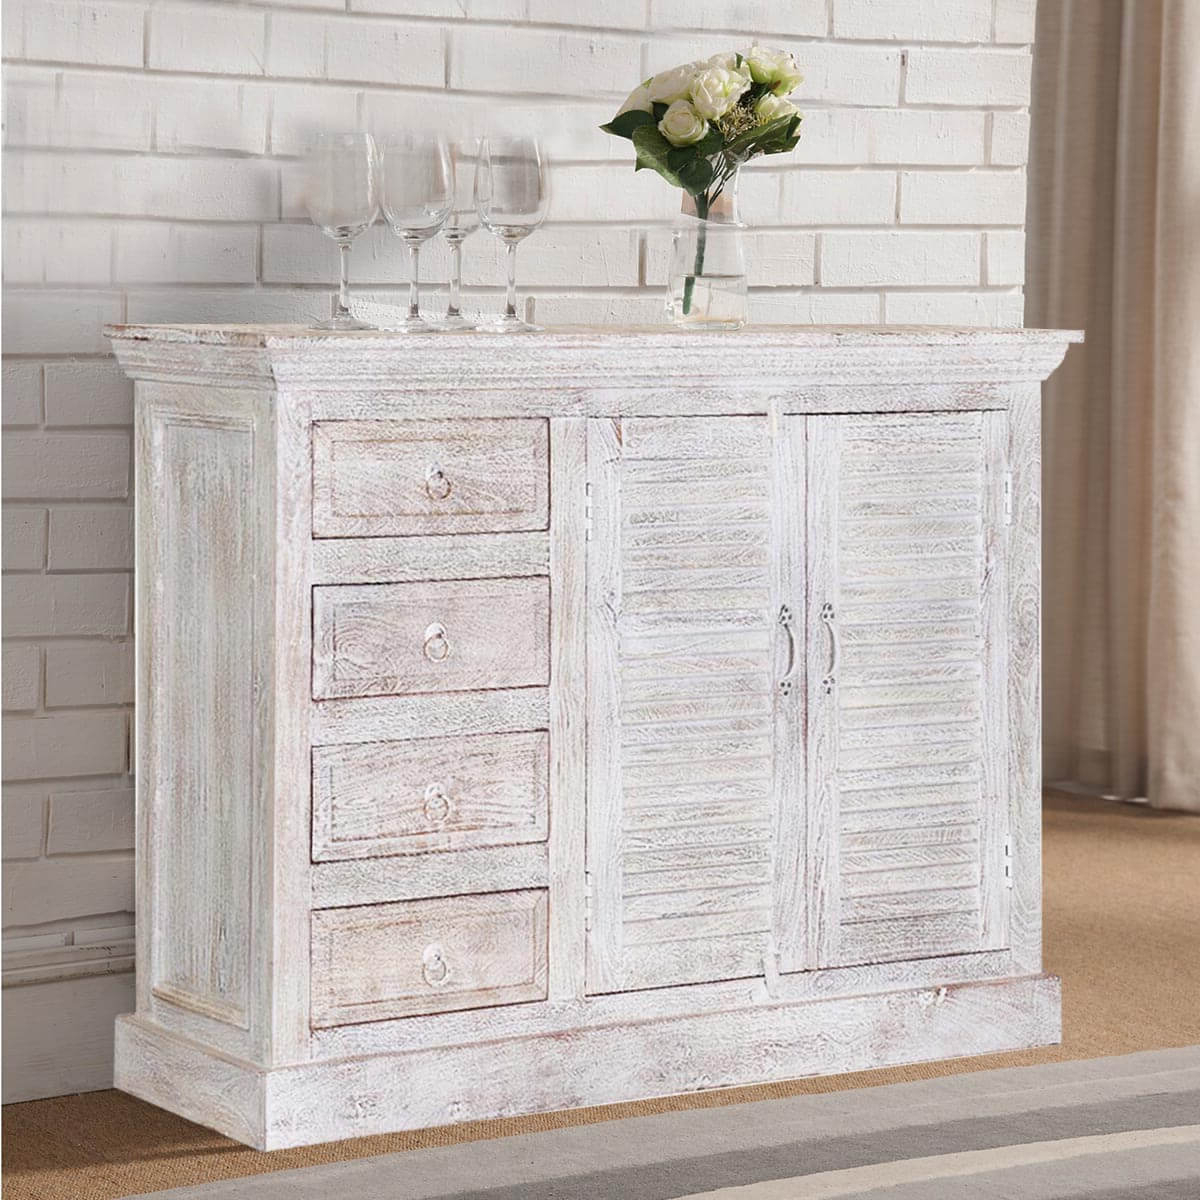 Vintage Finish 4 Door Sideboards With Favorite Ohio Rustic White Weathered Finish 2 Door 4 Drawer Sideboard (View 16 of 20)